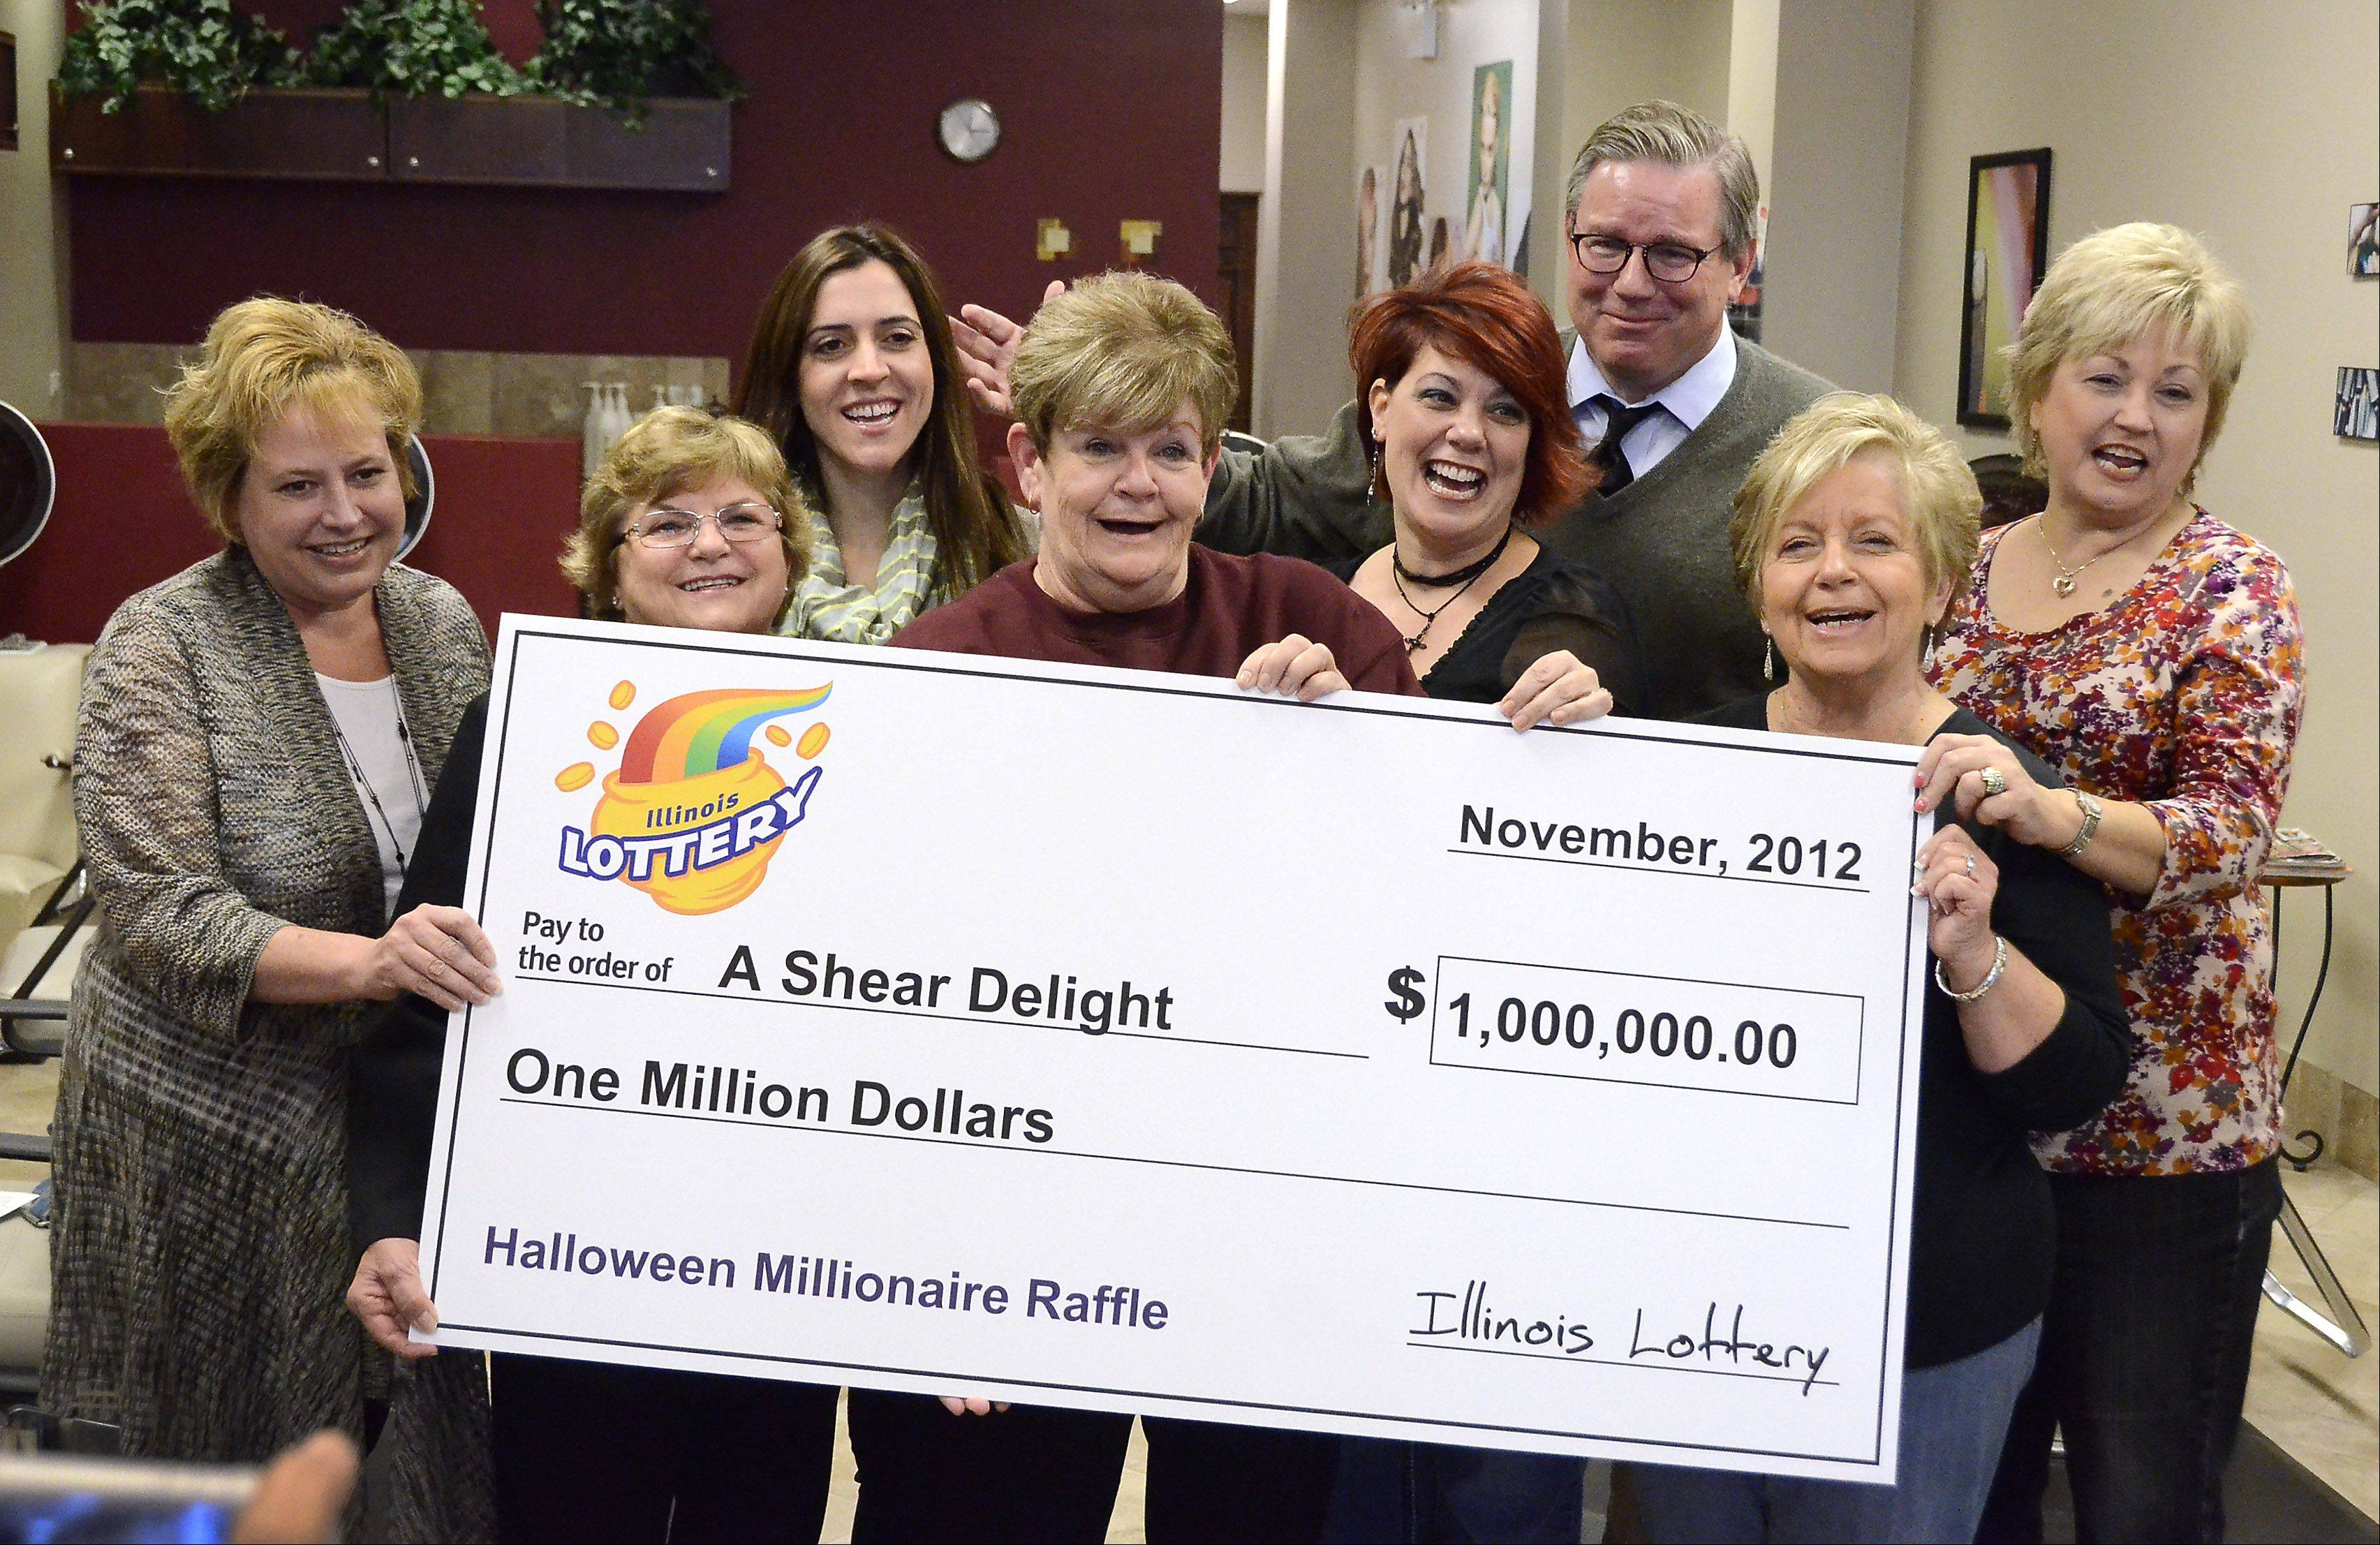 Hanover Park beauty salon workers win lottery